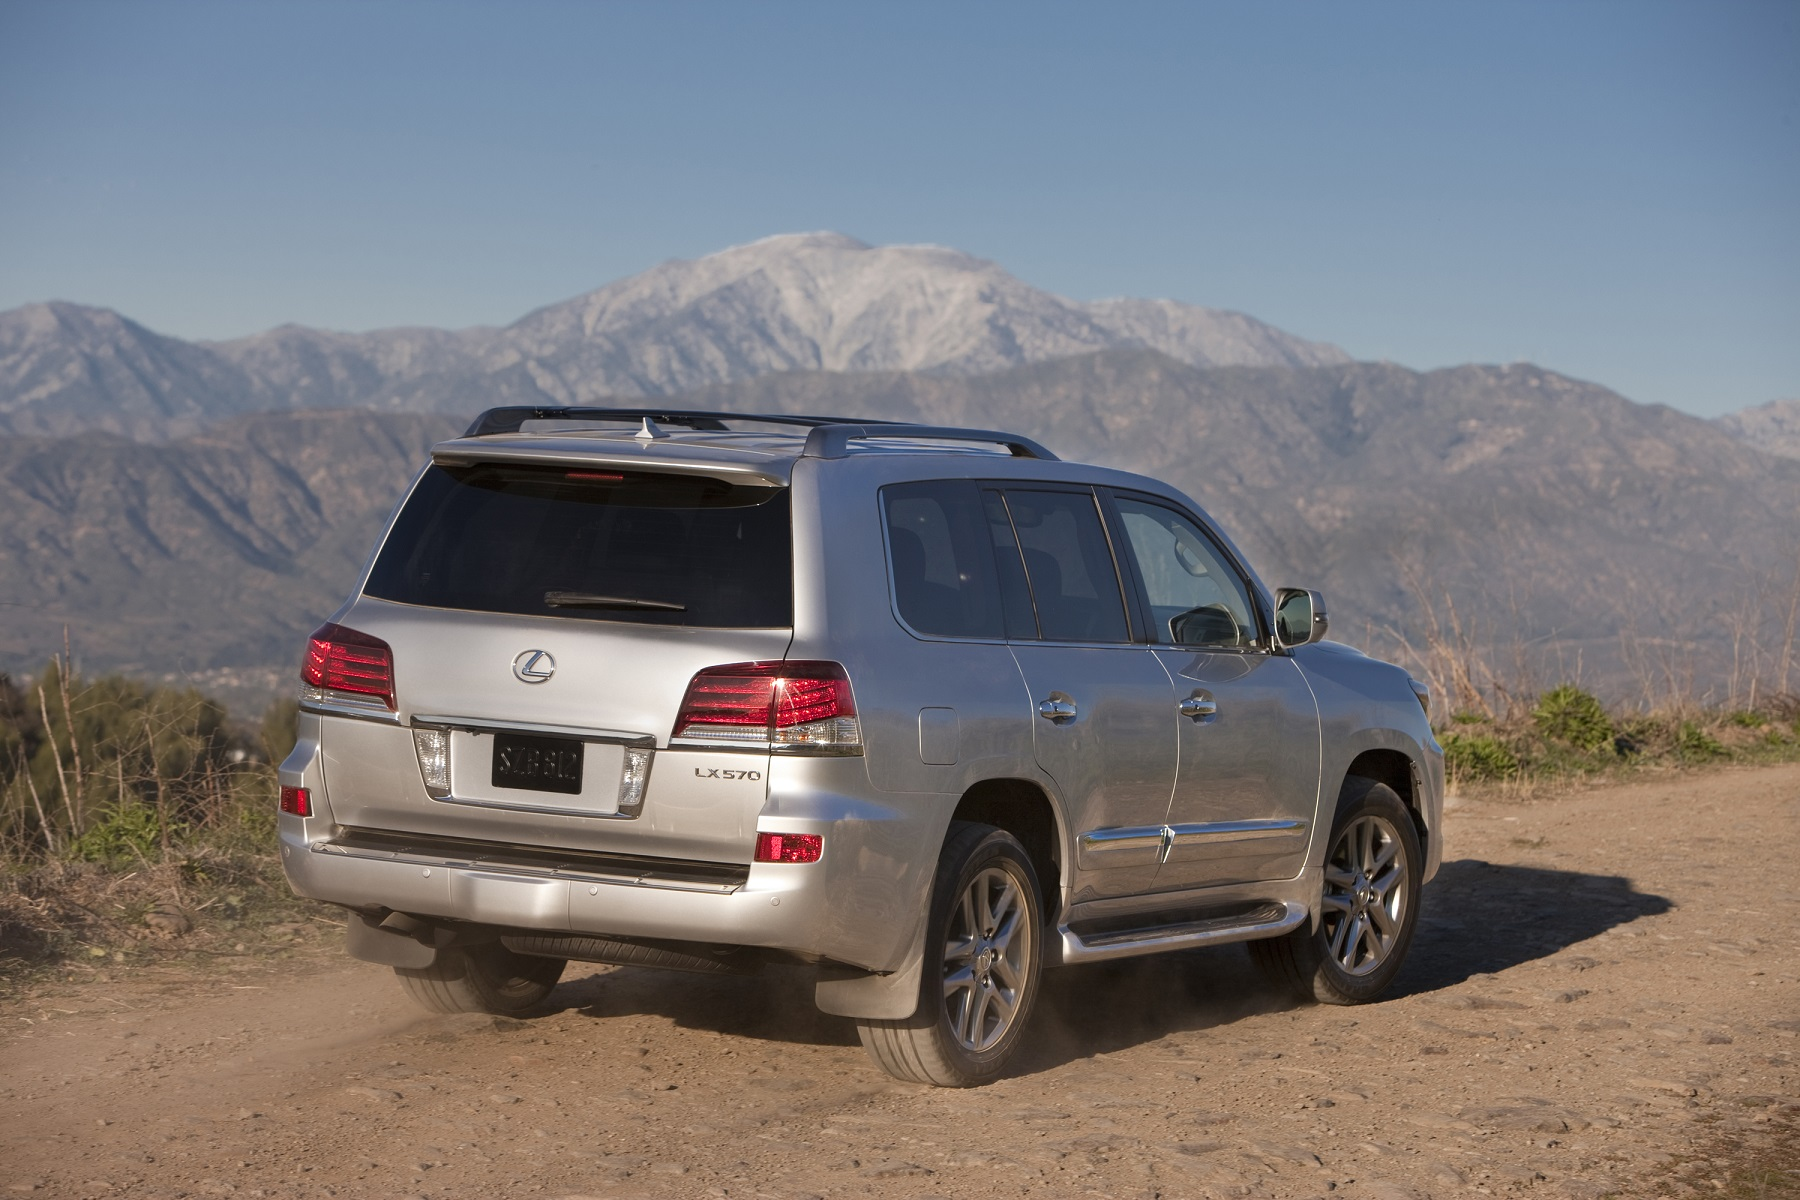 Manufacturer photo: The 2013 Lexus LX 570 sports a new spindle grille, 20-inch alloy wheel design and upgraded interior